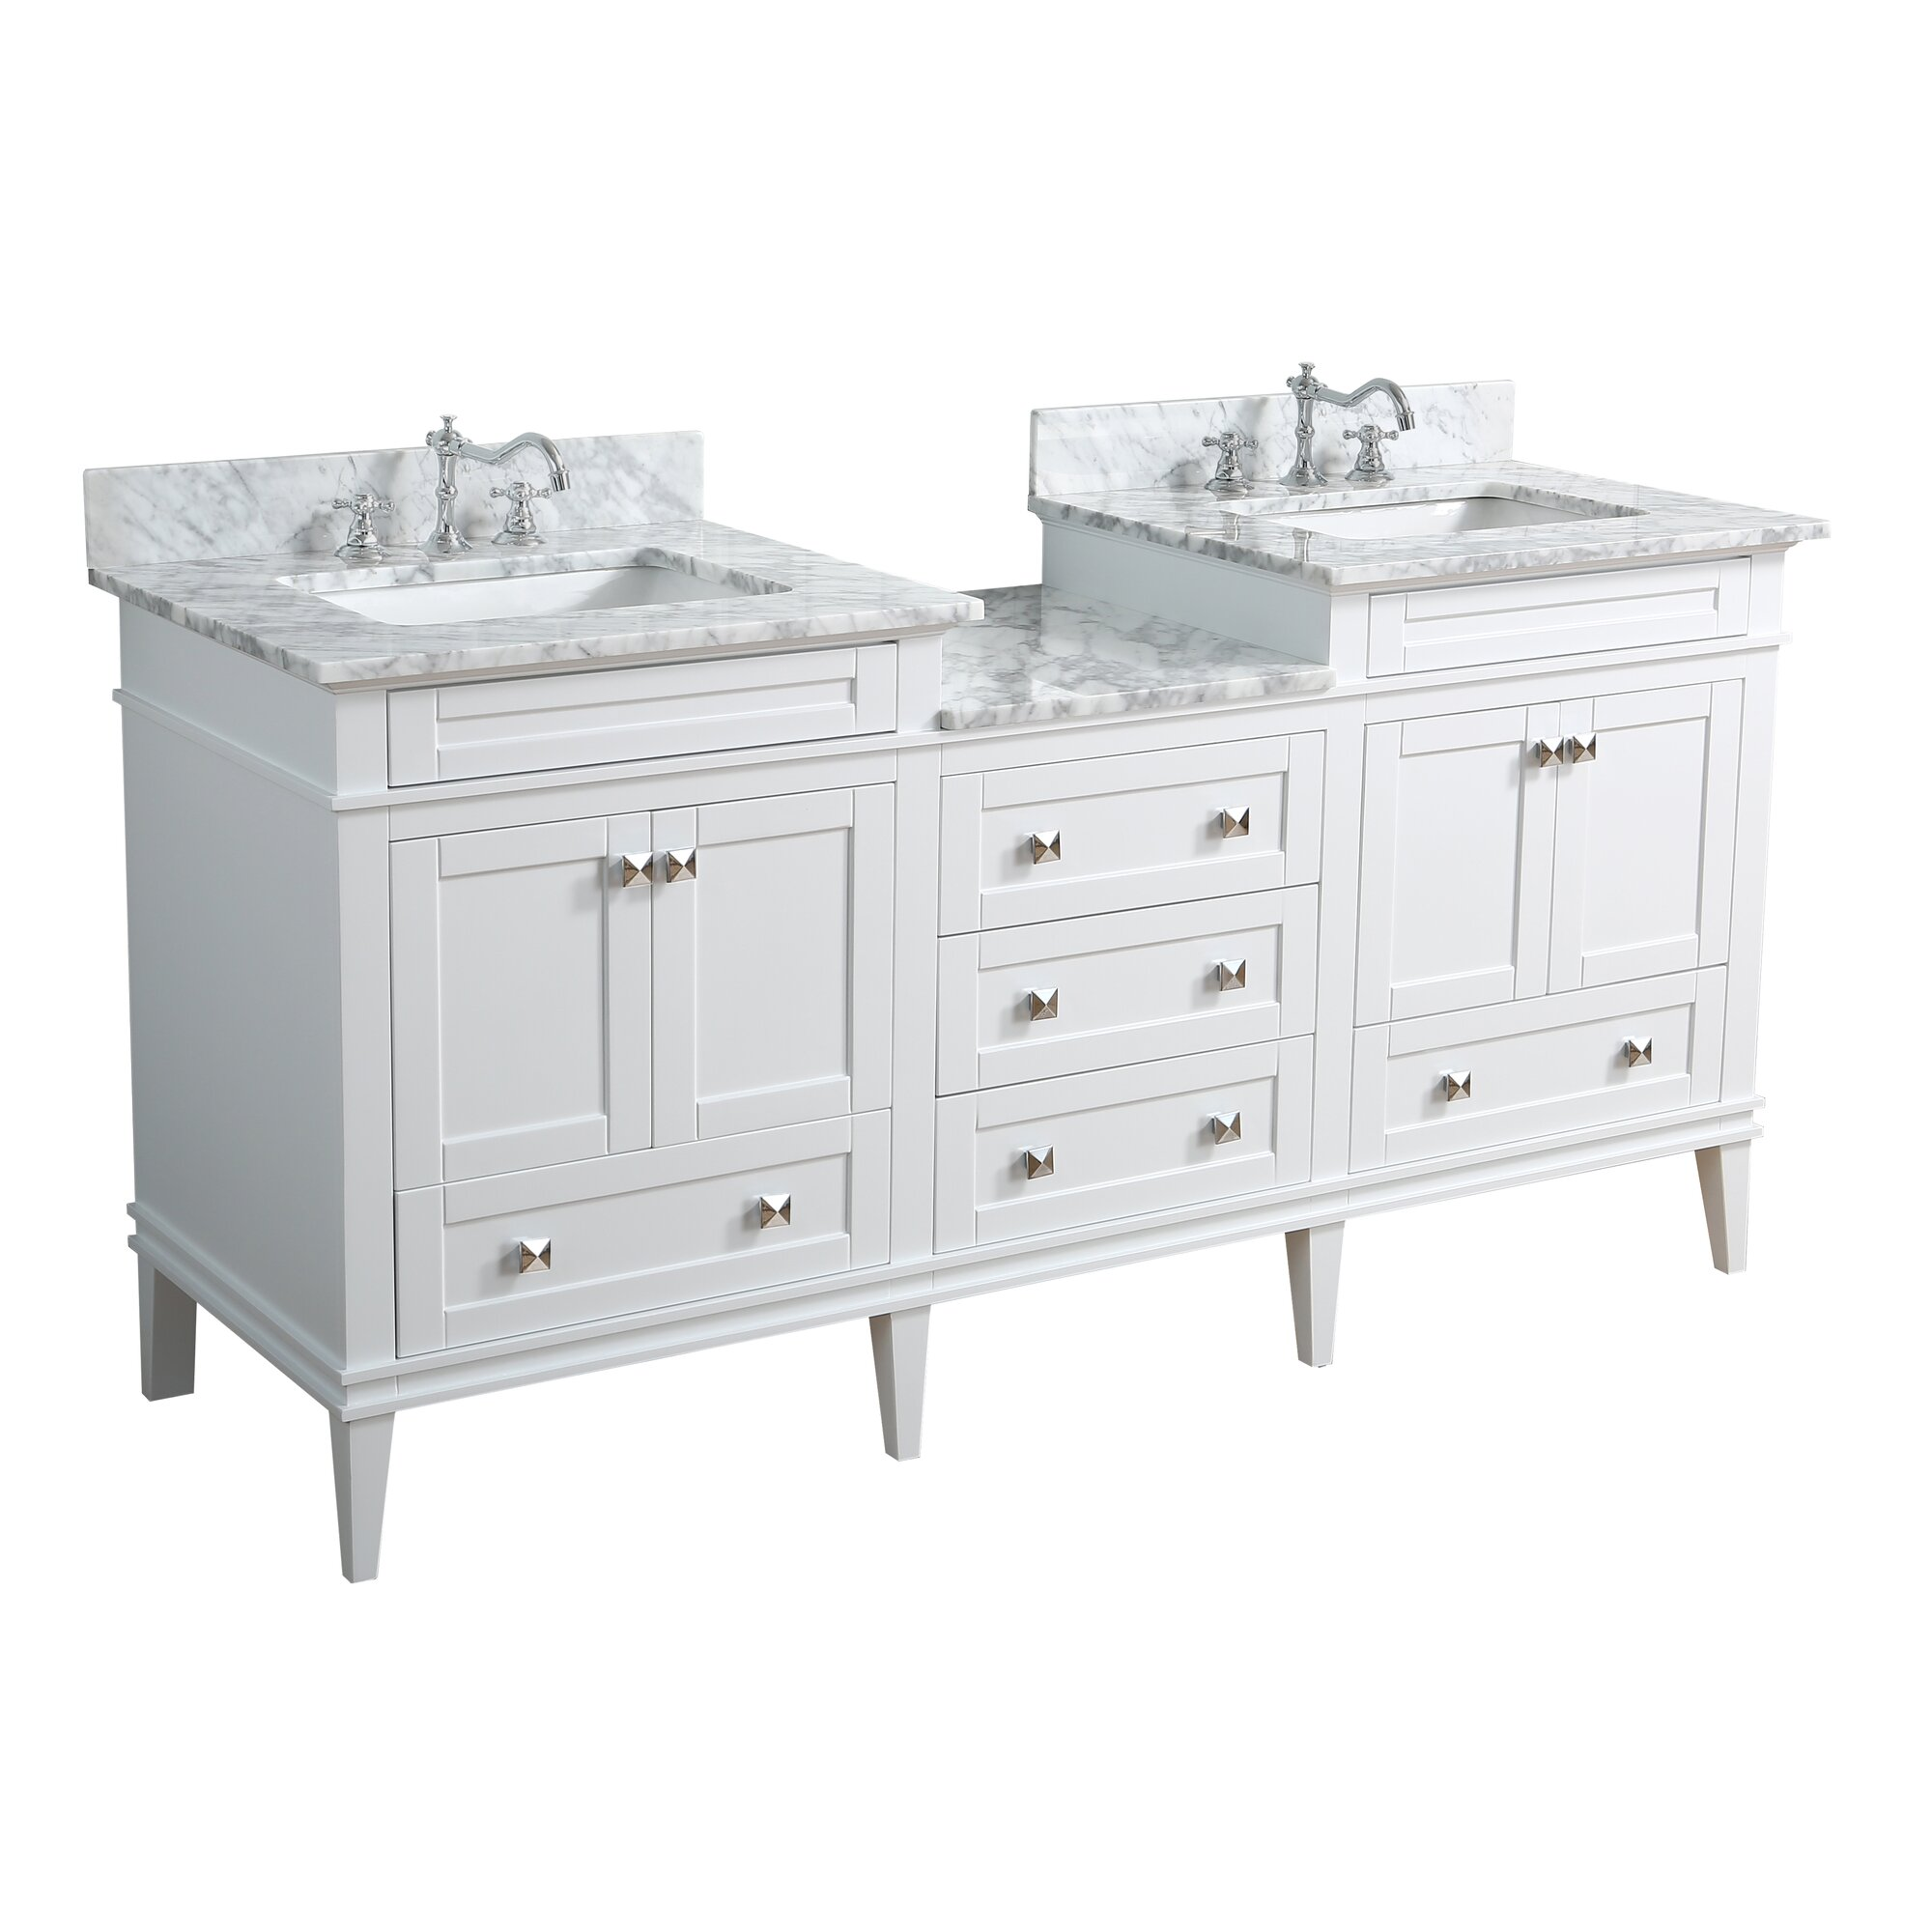 Kbc Eleanor 72 Double Bathroom Vanity Set Reviews